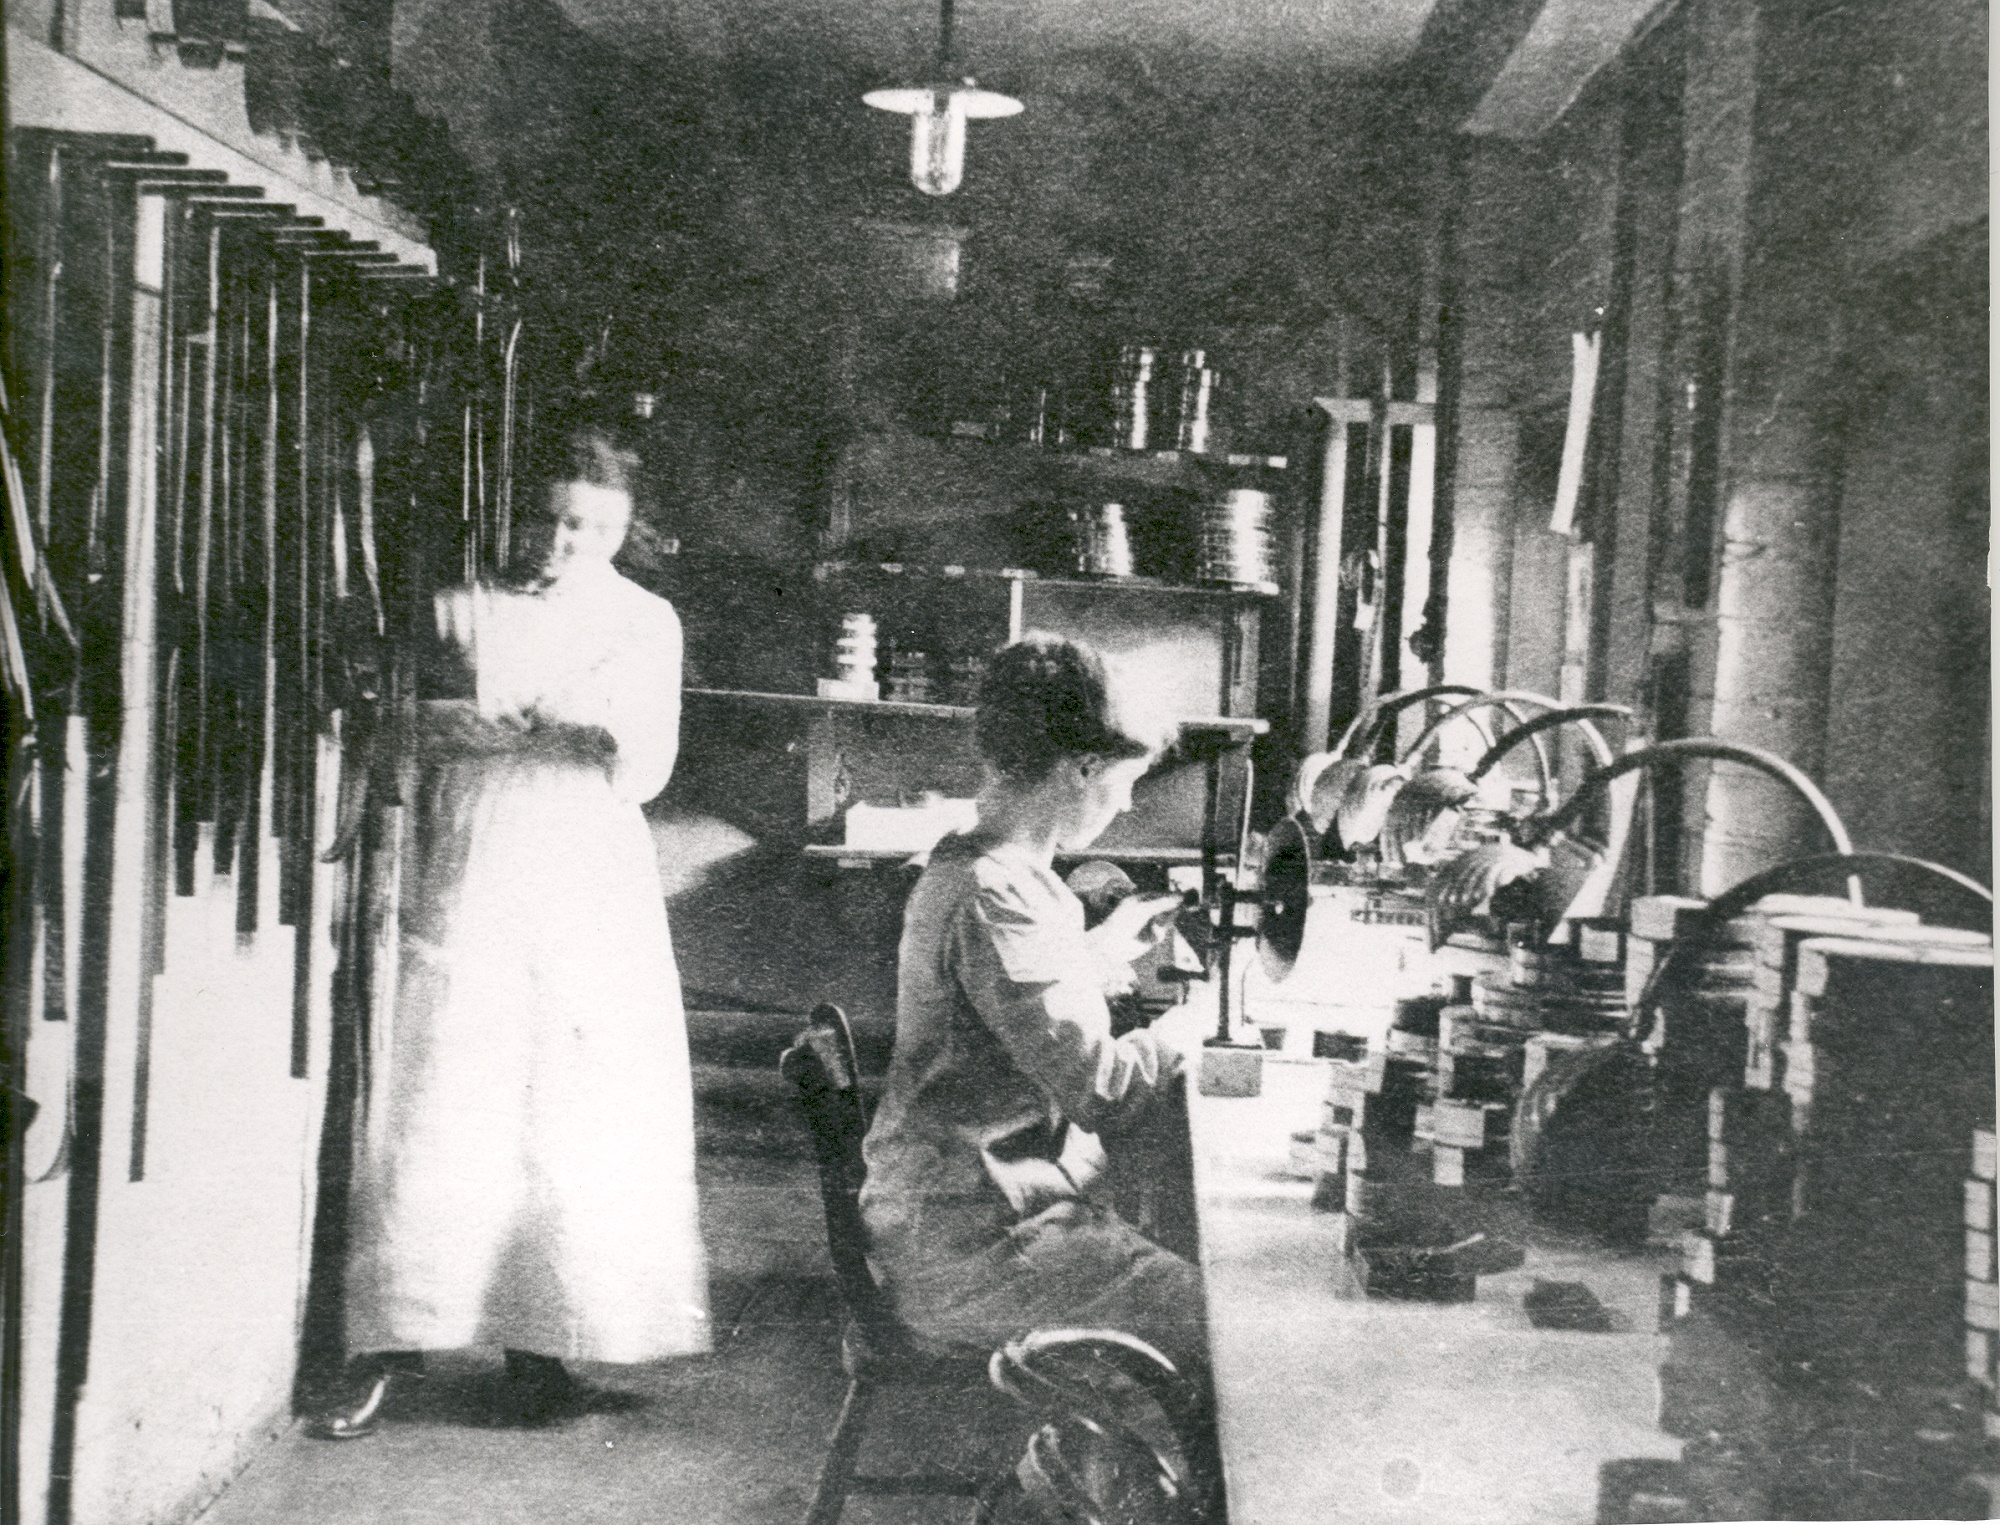 Two women cutting and editing film at the Hepworth Studios. Seated woman on right is Miss Gaiger. They are assembling in order sections of prints which have been printed blue (for night), salmon pink (romantic scenes), amber (sunlit scenes), red (fires or firelight), green (crime) and black and white for